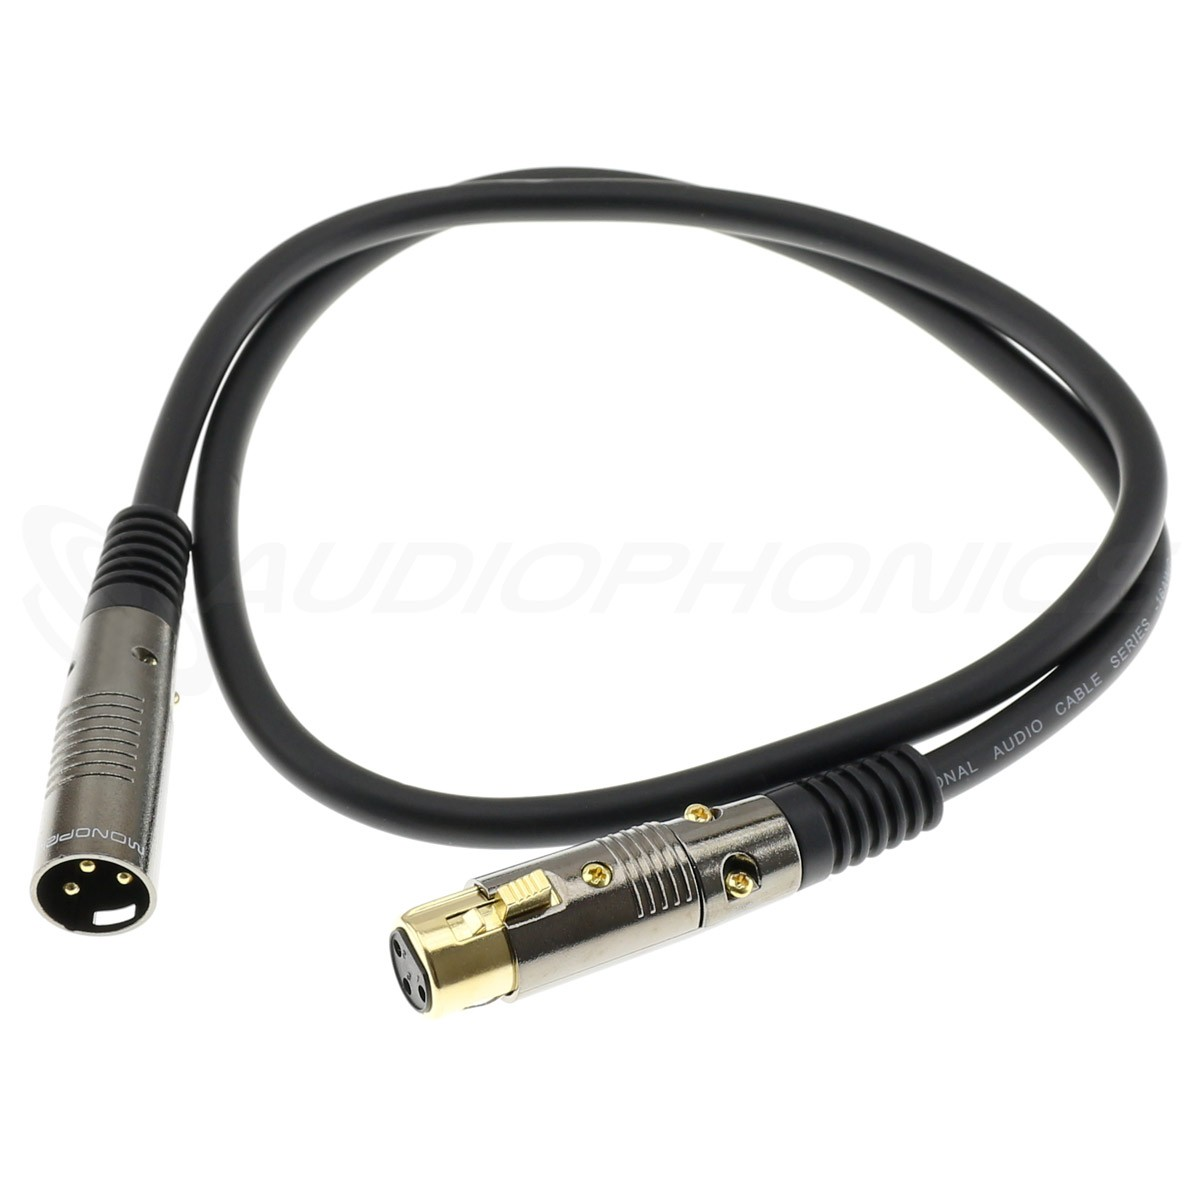 Interconnect Cable Female XLR to Male XLR Gold Plated 1.31mm² 7.6m